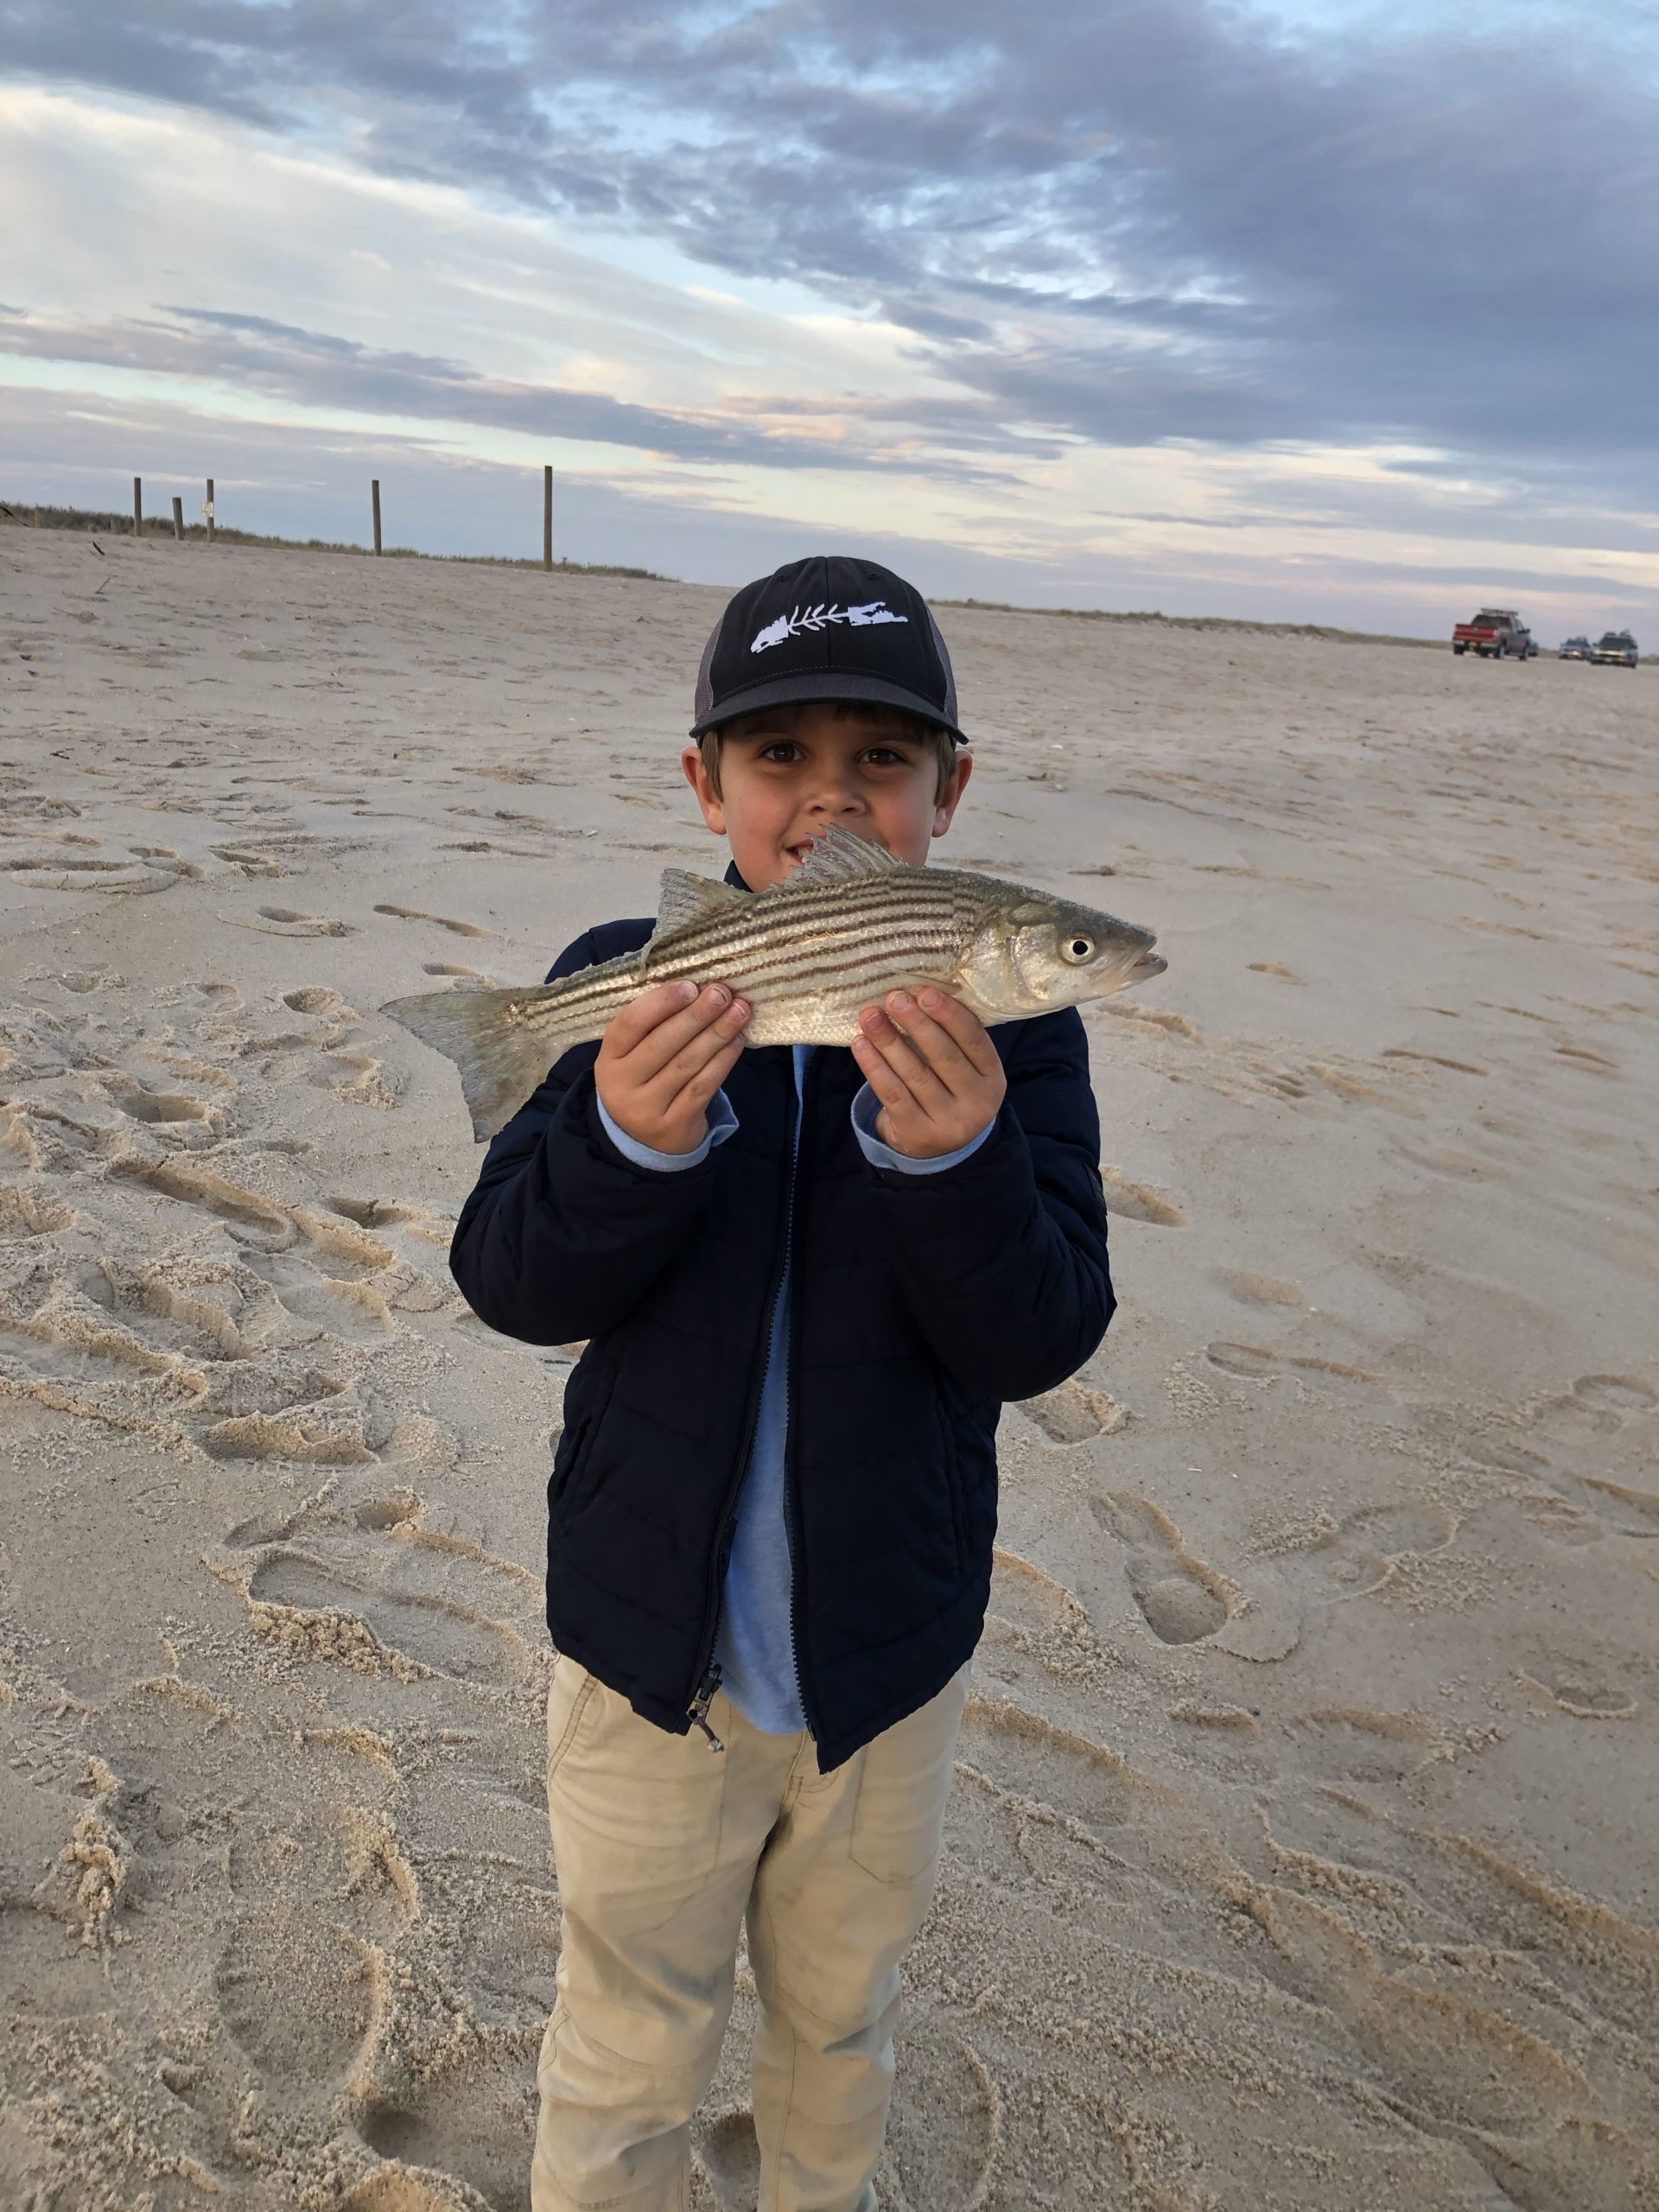 It was a day for the young ones on Saturday and 6-year-old Thomas Capalbo had a blast catching lots of pint-sized striped bass.